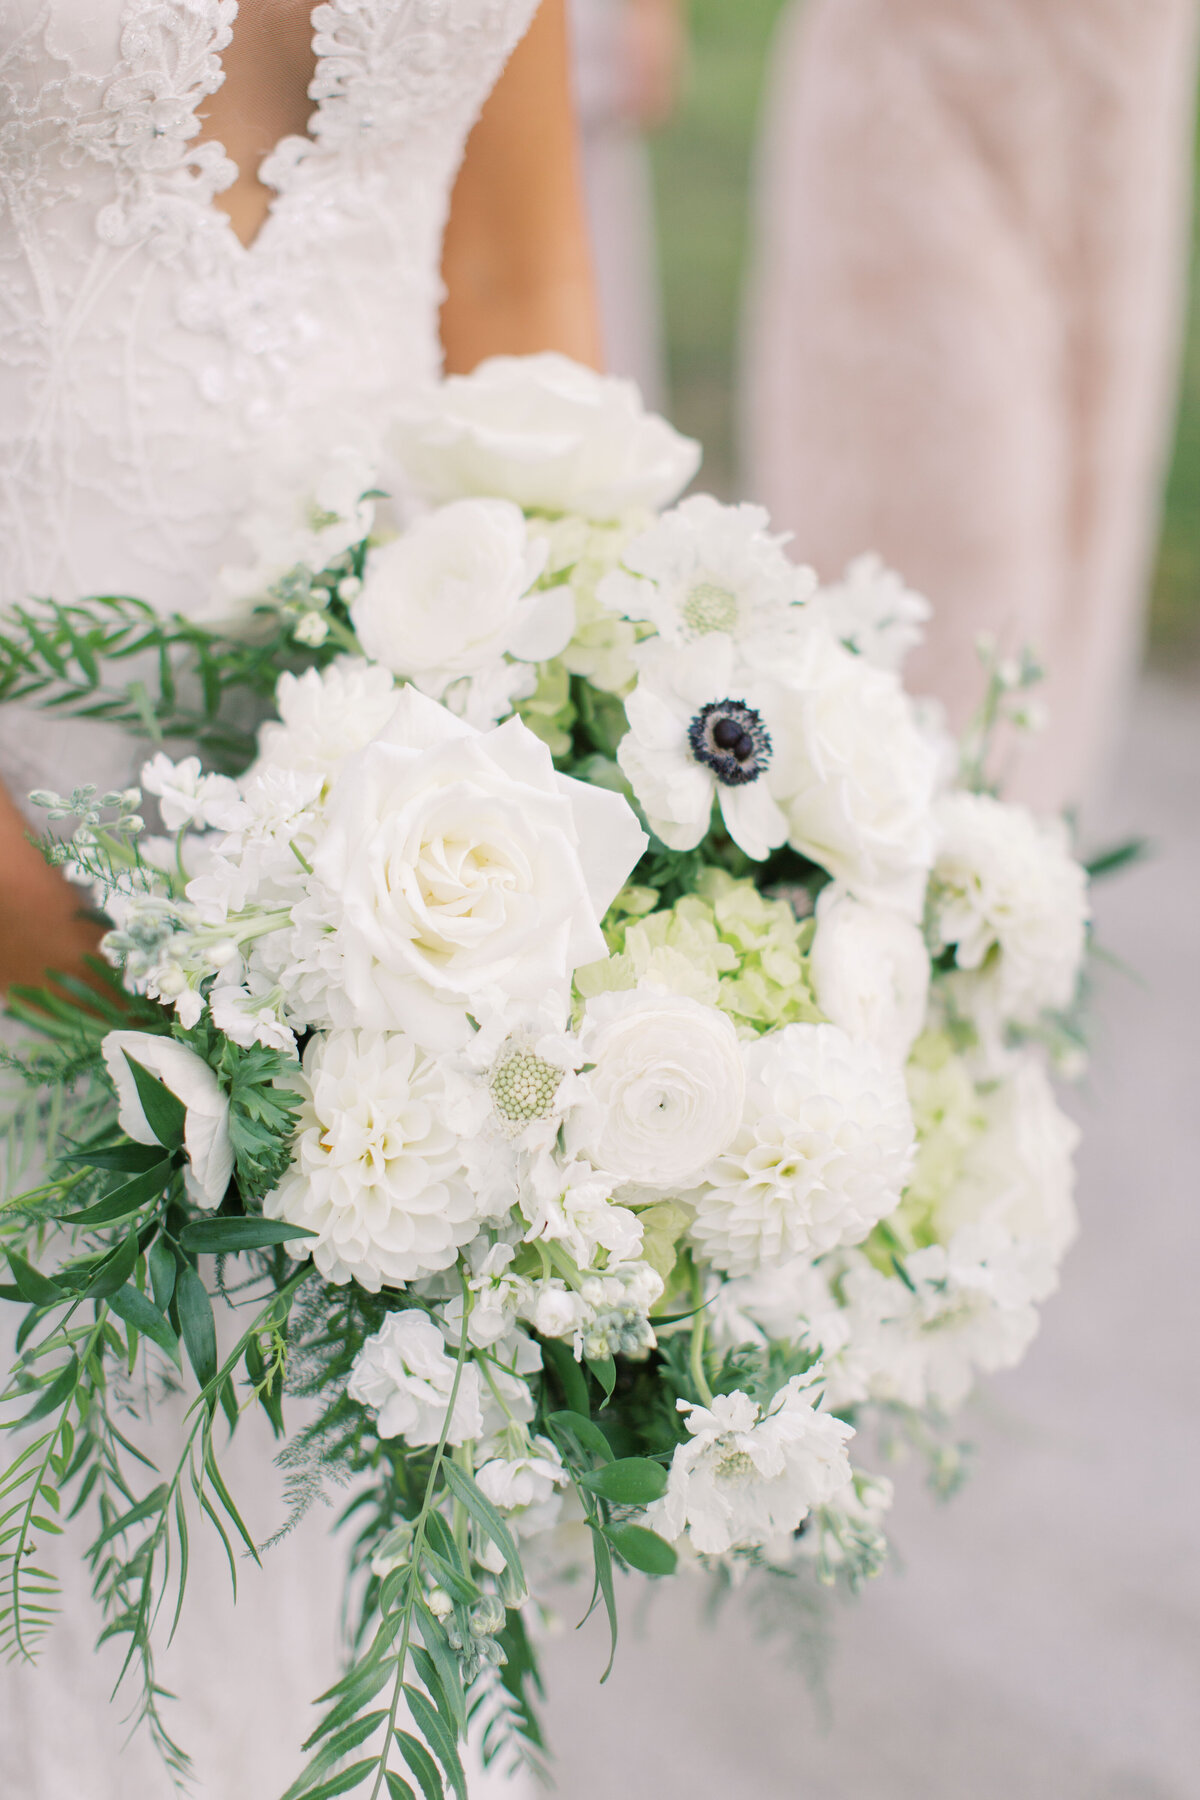 Melton_Wedding__Middleton_Place_Plantation_Charleston_South_Carolina_Jacksonville_Florida_Devon_Donnahoo_Photography__0228